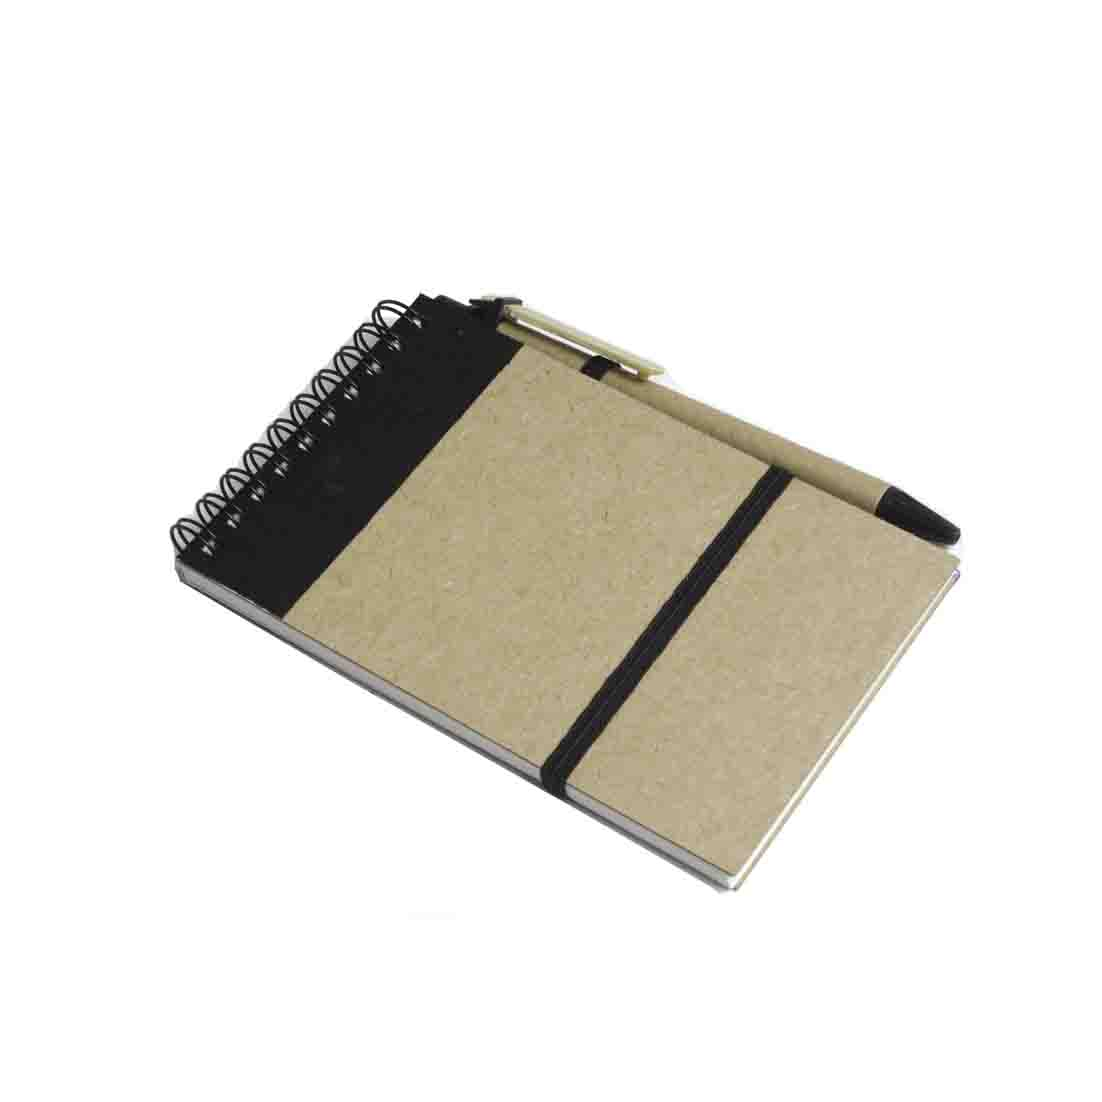 Recycled paper notebook with pen - black gb-212 bk